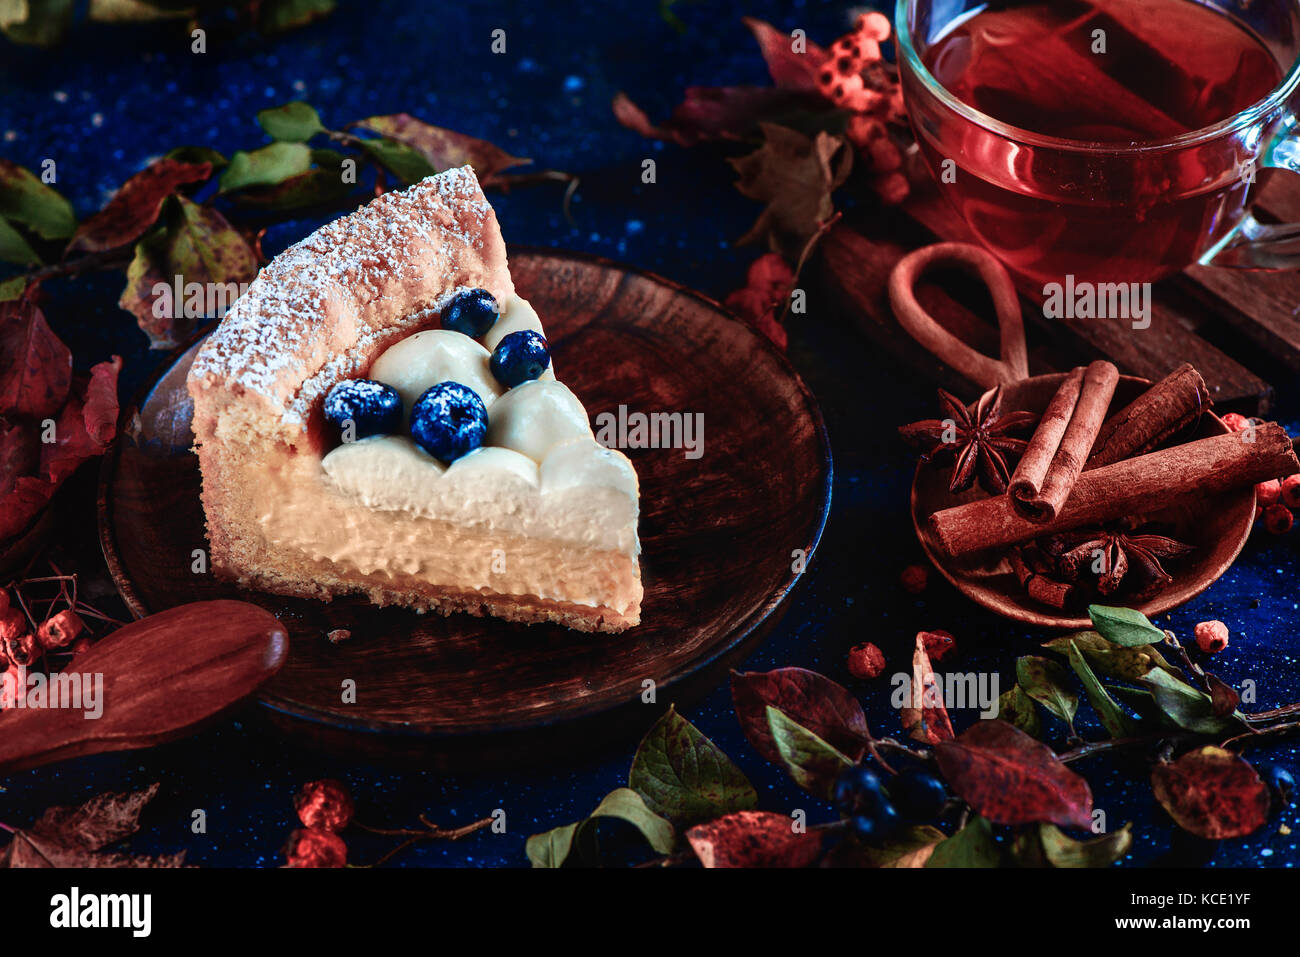 Hommemade crust cake with wipped cream, blueberries and pumpkin puree on a dark background with leaves and cinnamon. - Stock Image